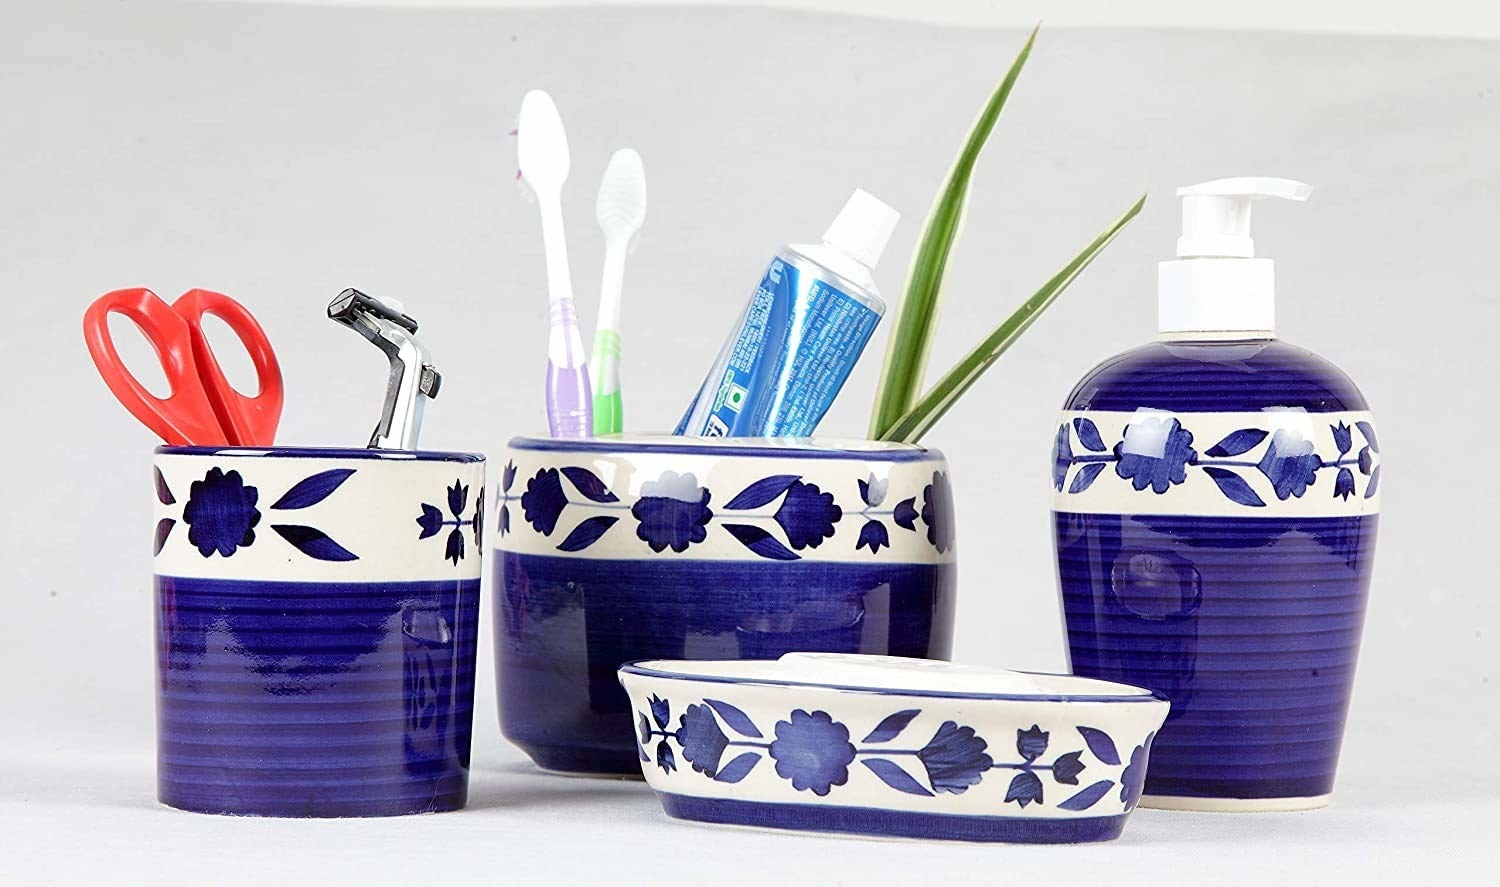 A blue and white floral patterned bathroom accessories set